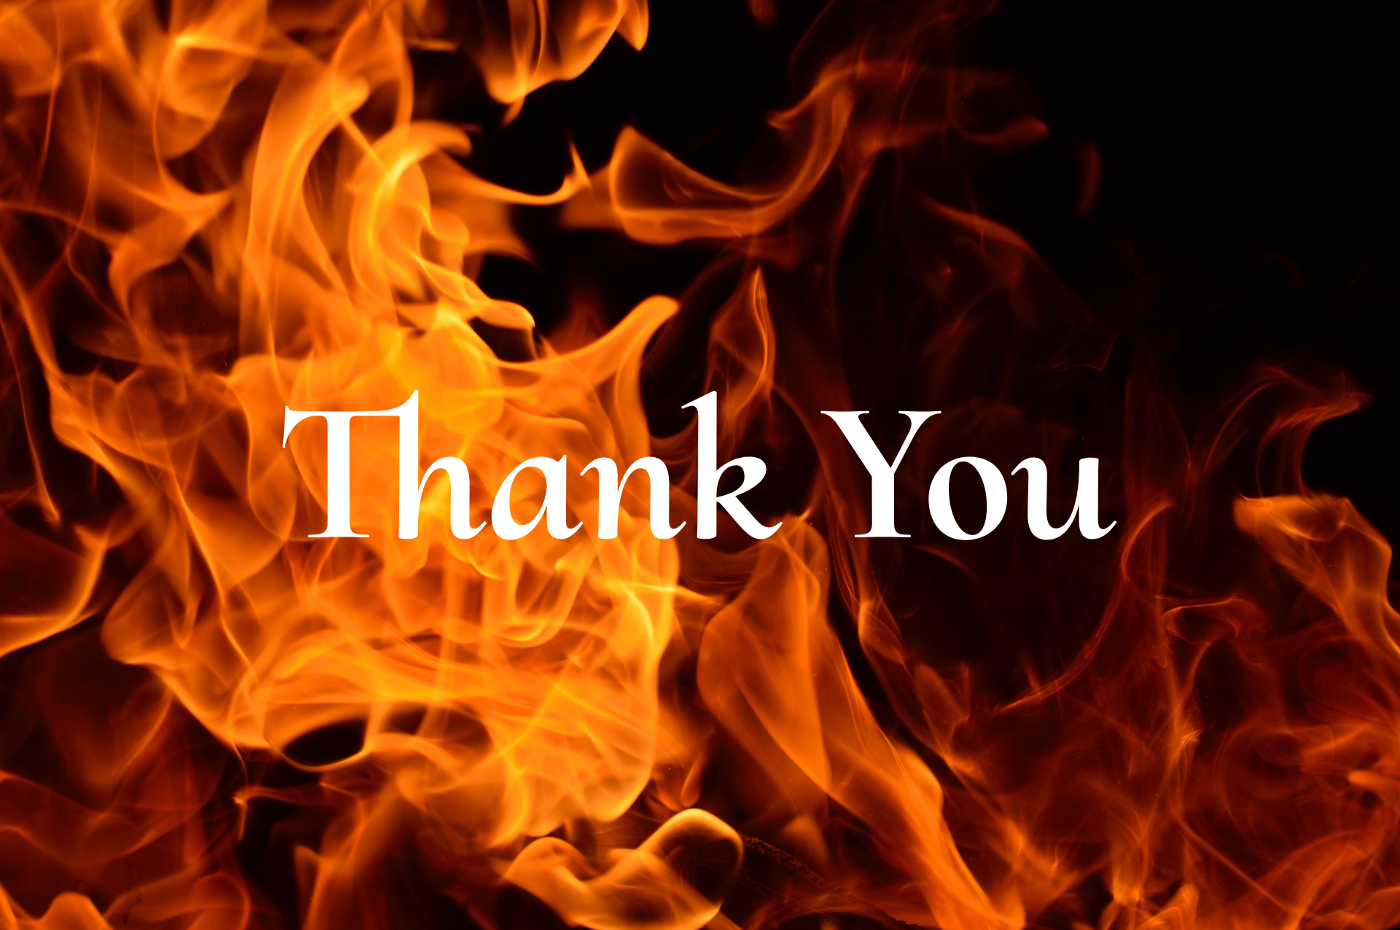 """Image of fire with white text that says """"Thank You"""""""